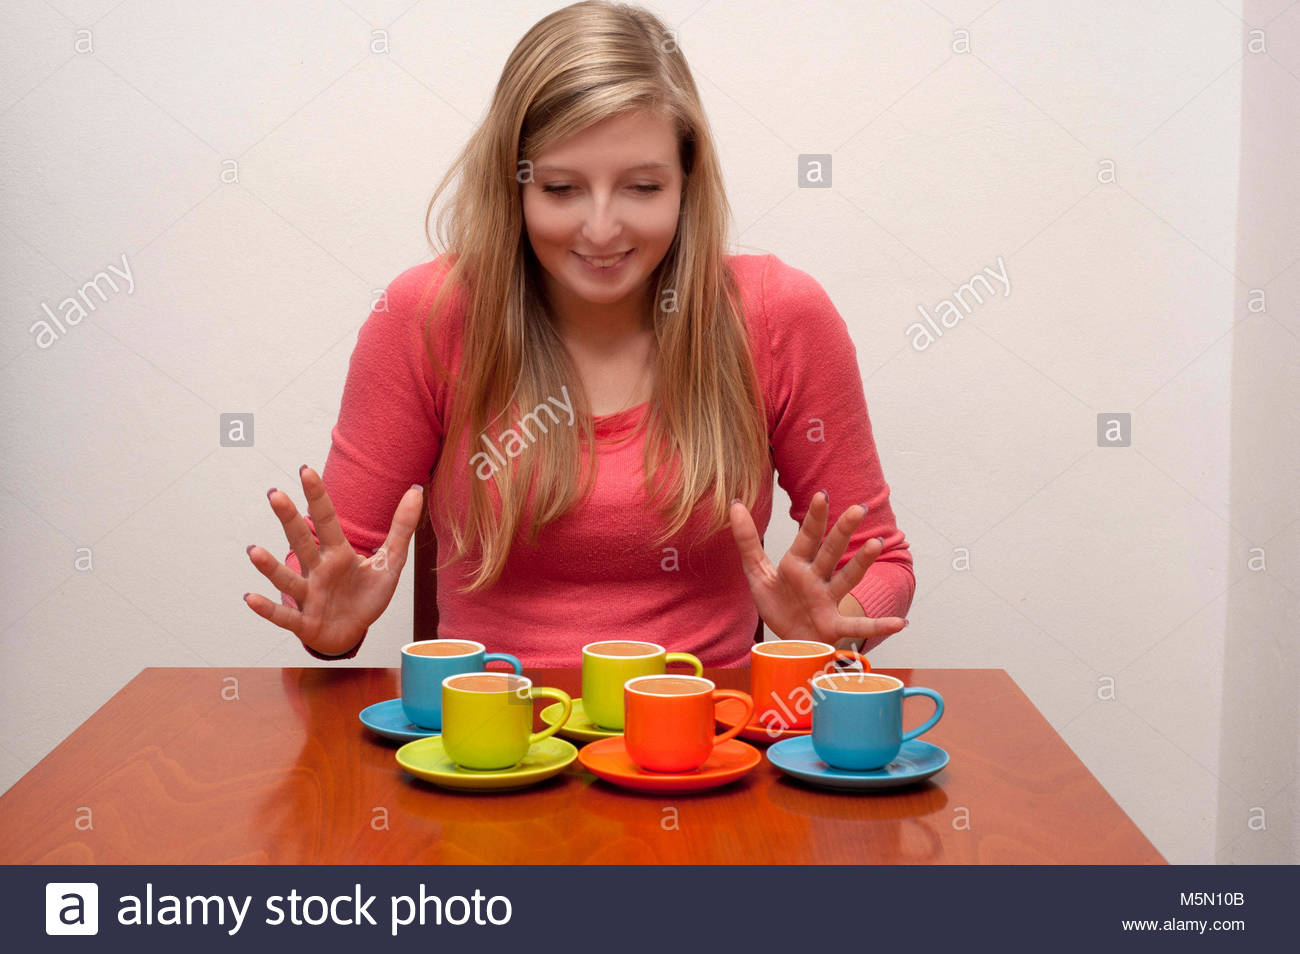 young woman sitting at table with colorful espresso coffee cups - Stock Image